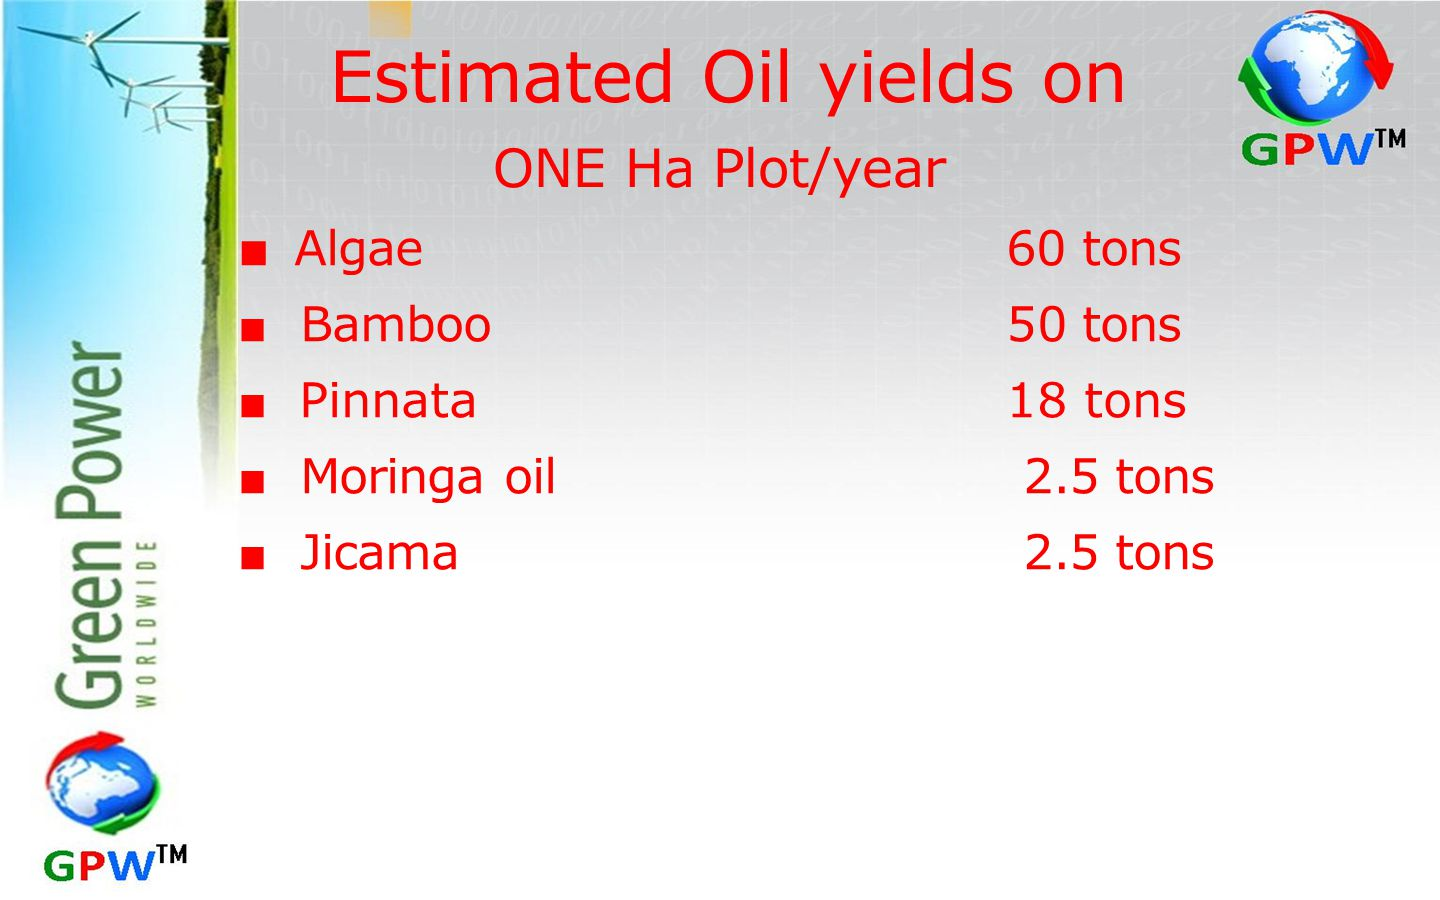 Estimated Oil yields on